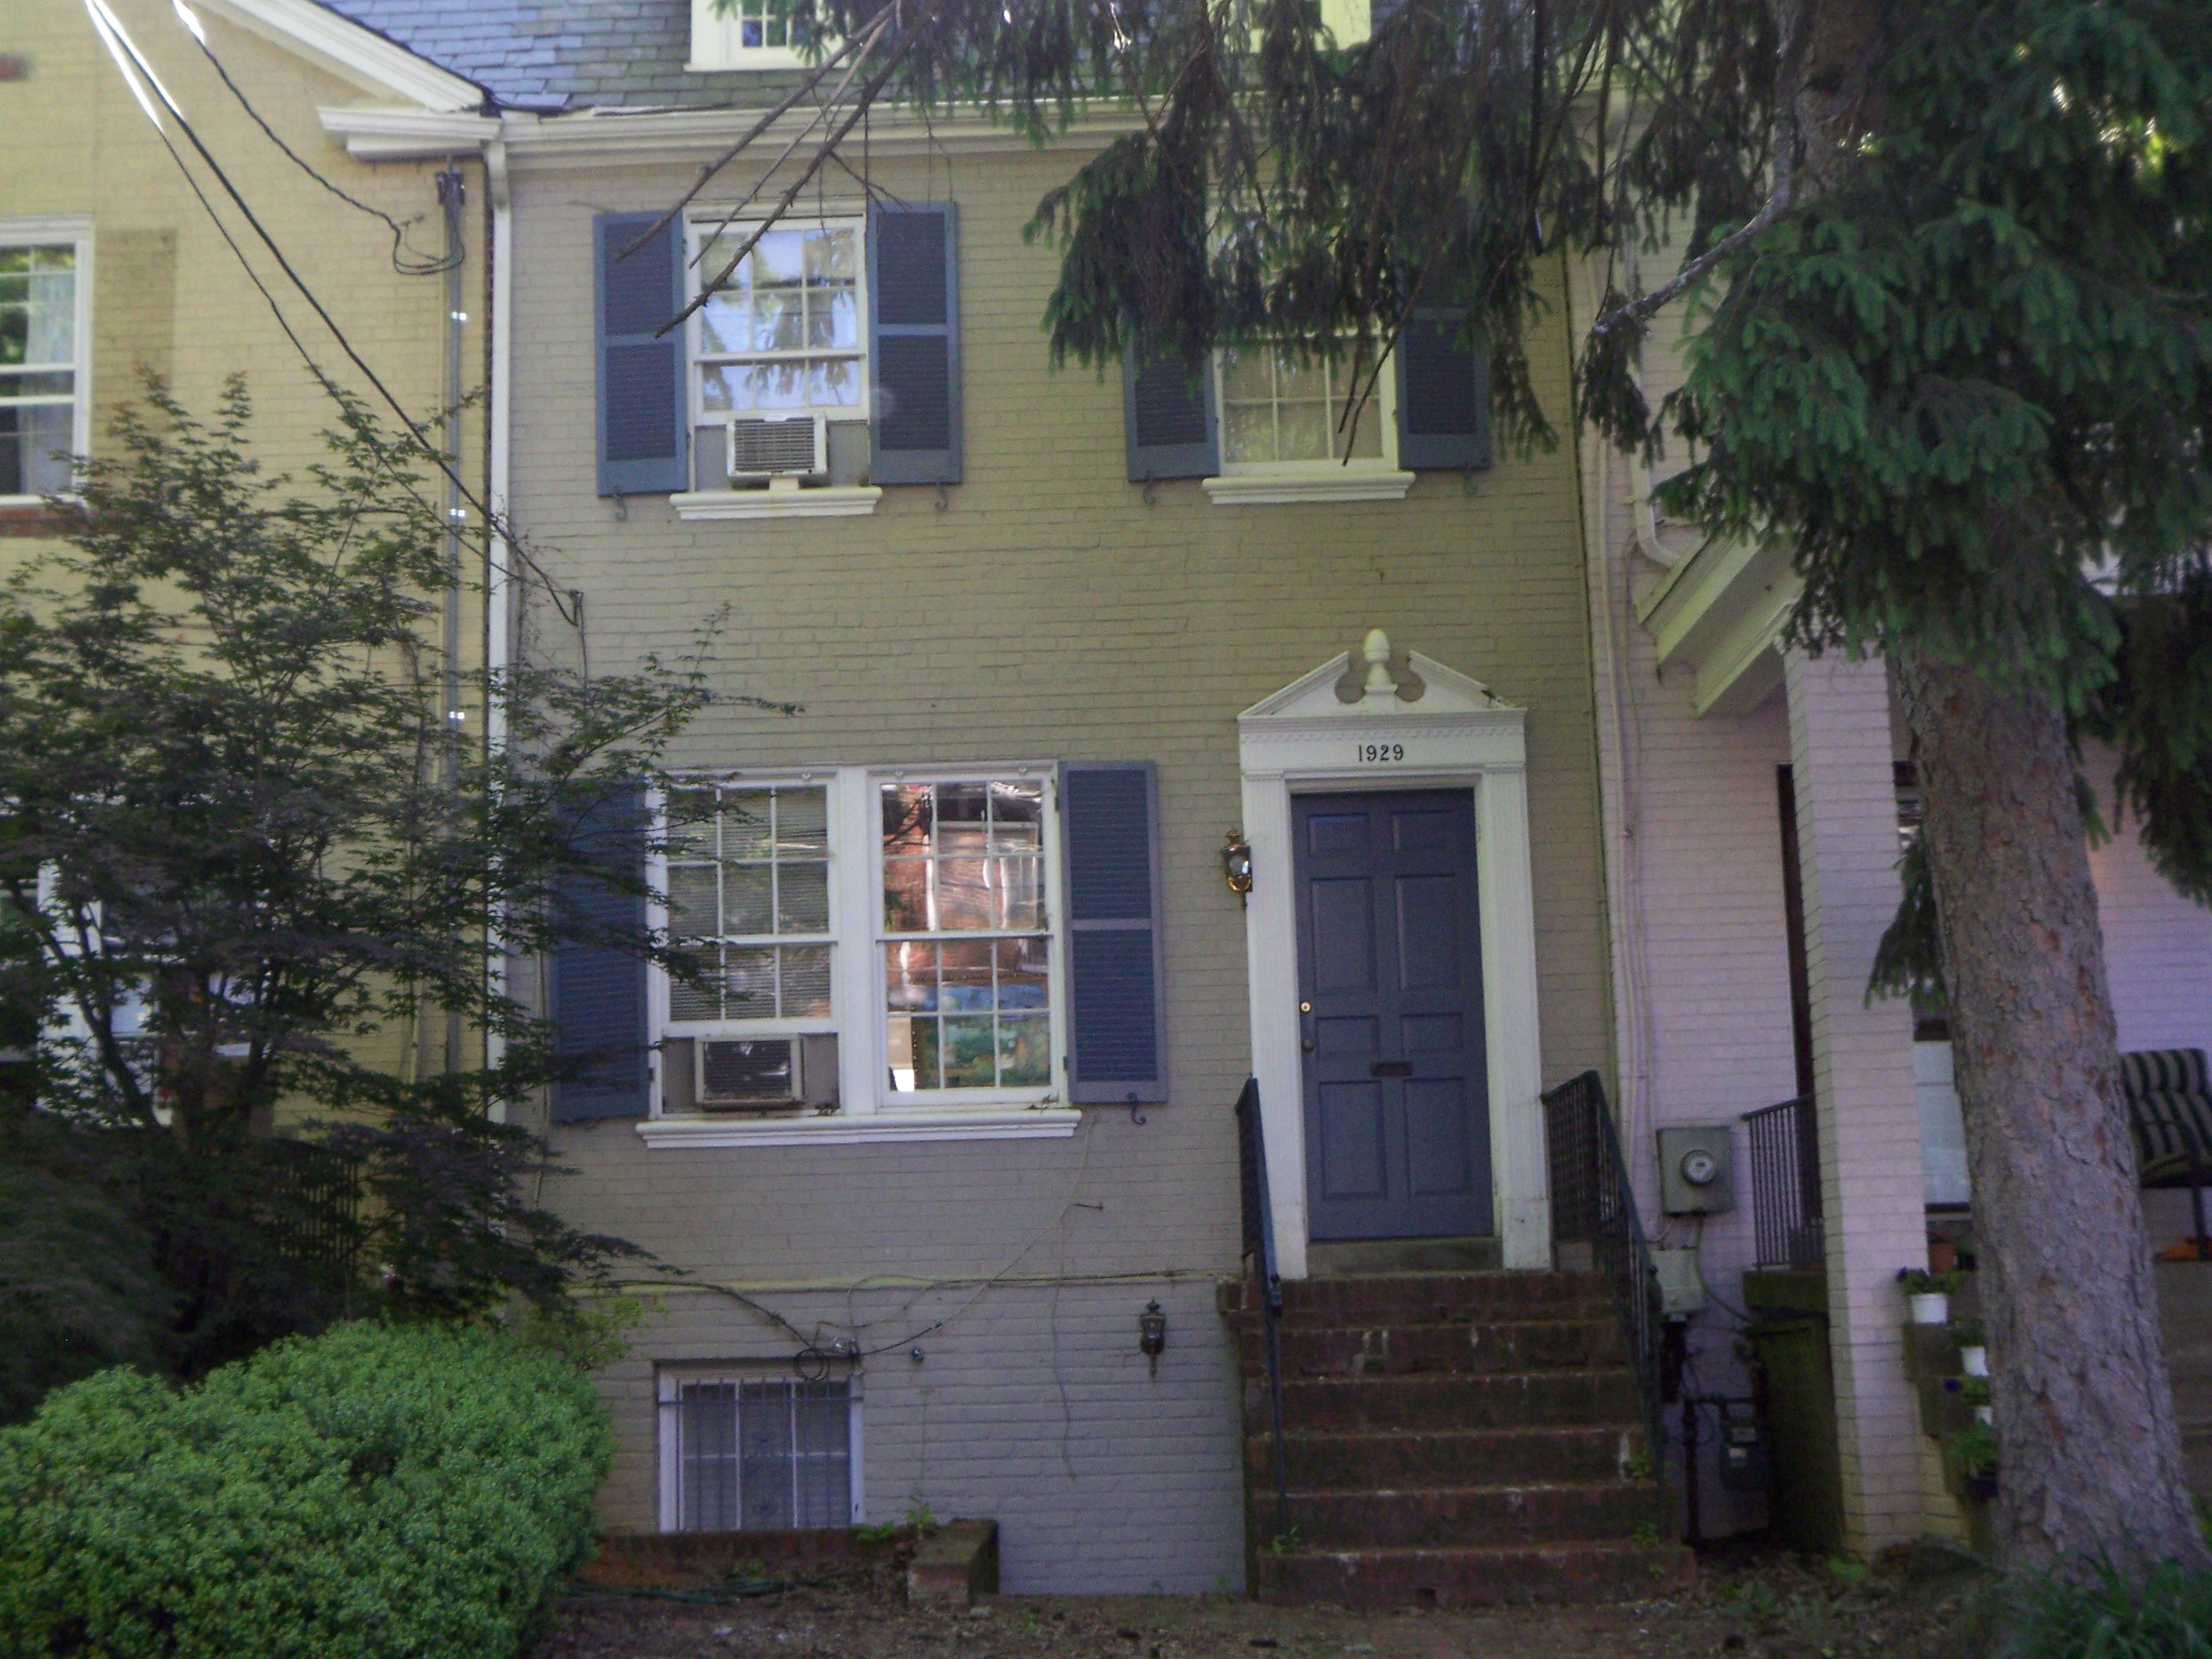 $6000 - 1929 38th Street, NW, 6BR/2.5BA, Available June 1